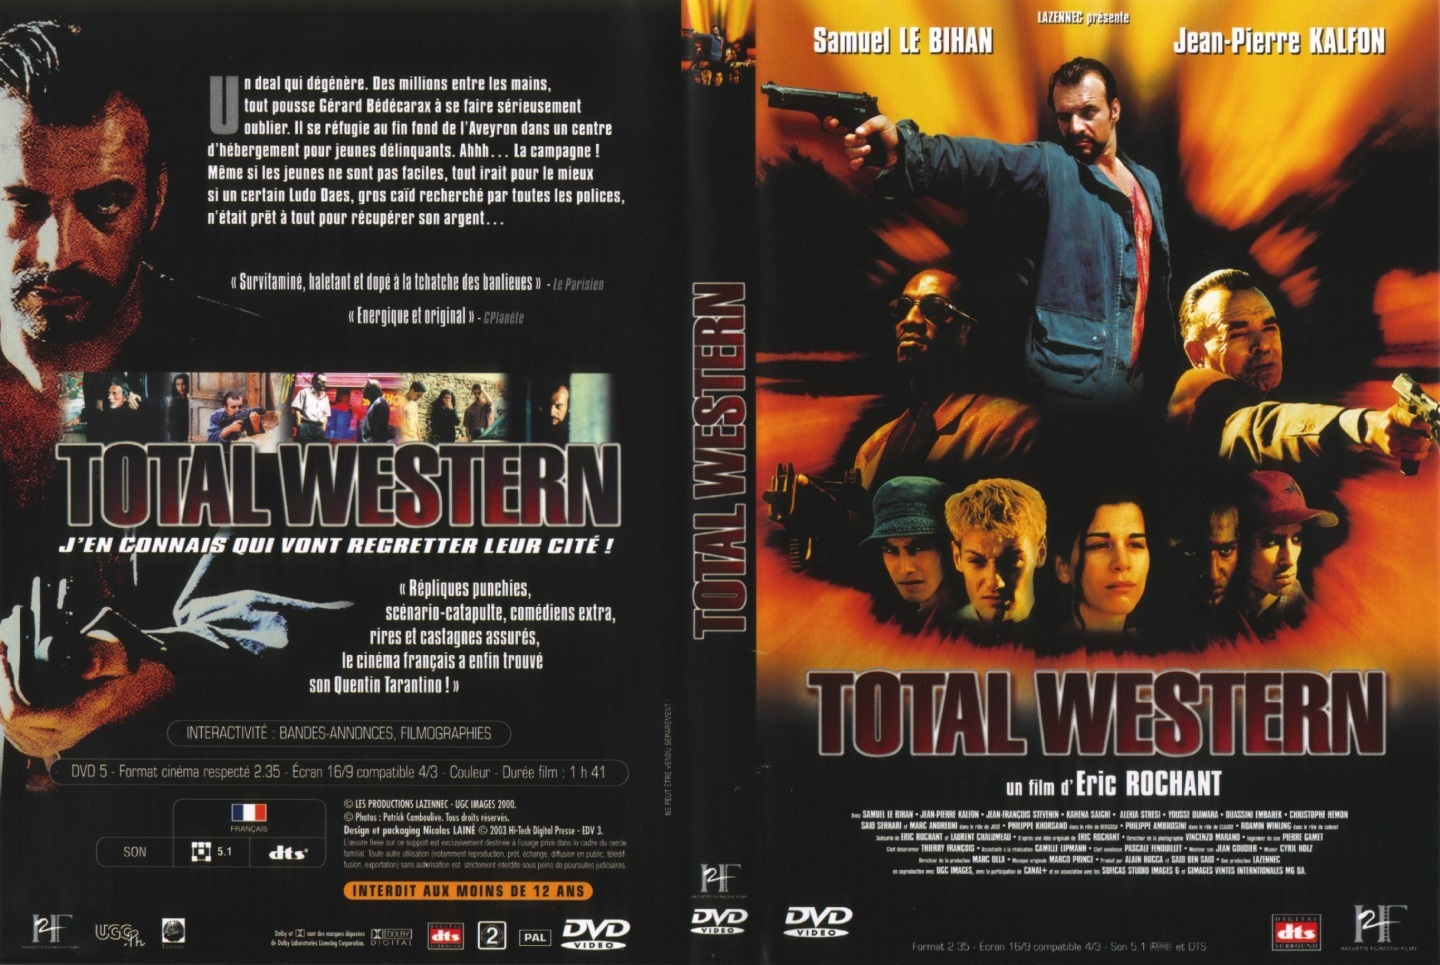 Total Western Movie